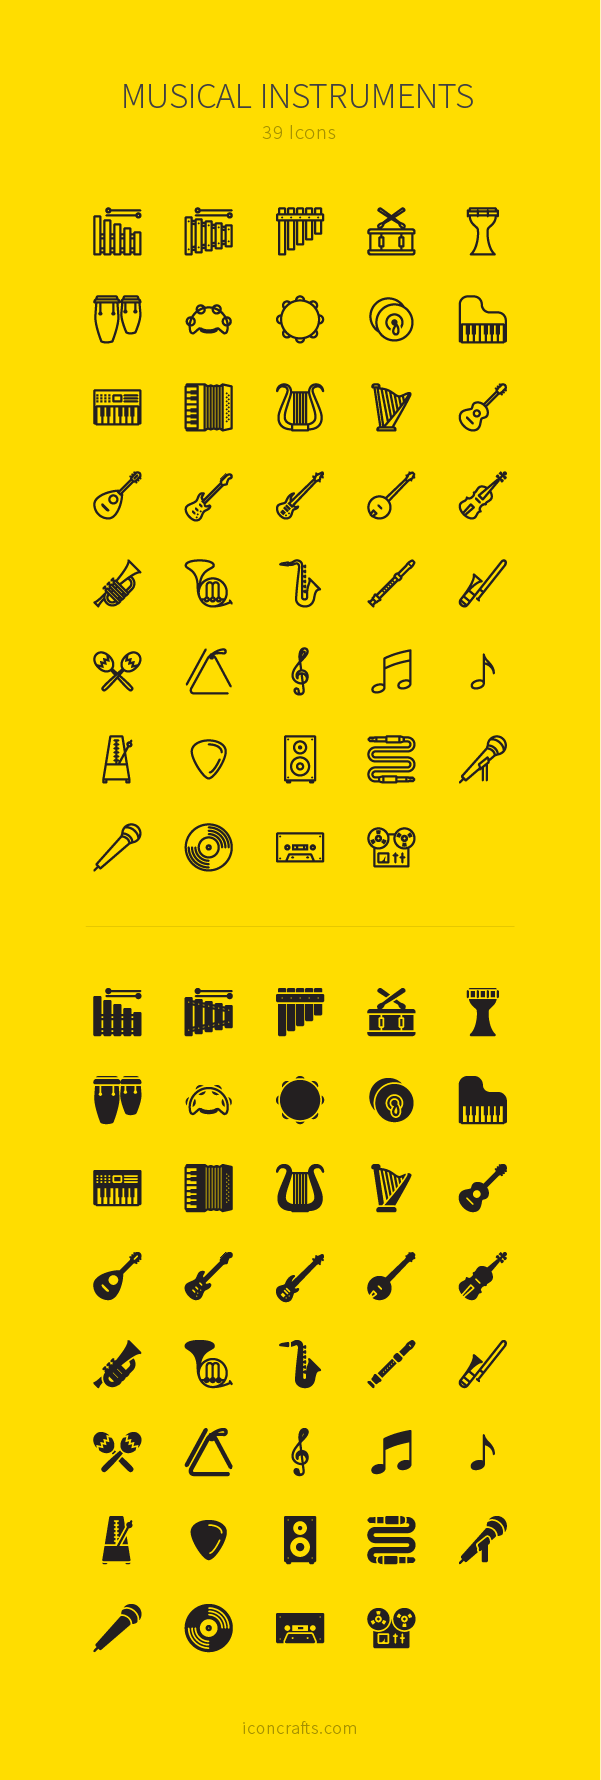 Musical Instruments icon set from Iconcrafts.com. Outline and filled versions available.